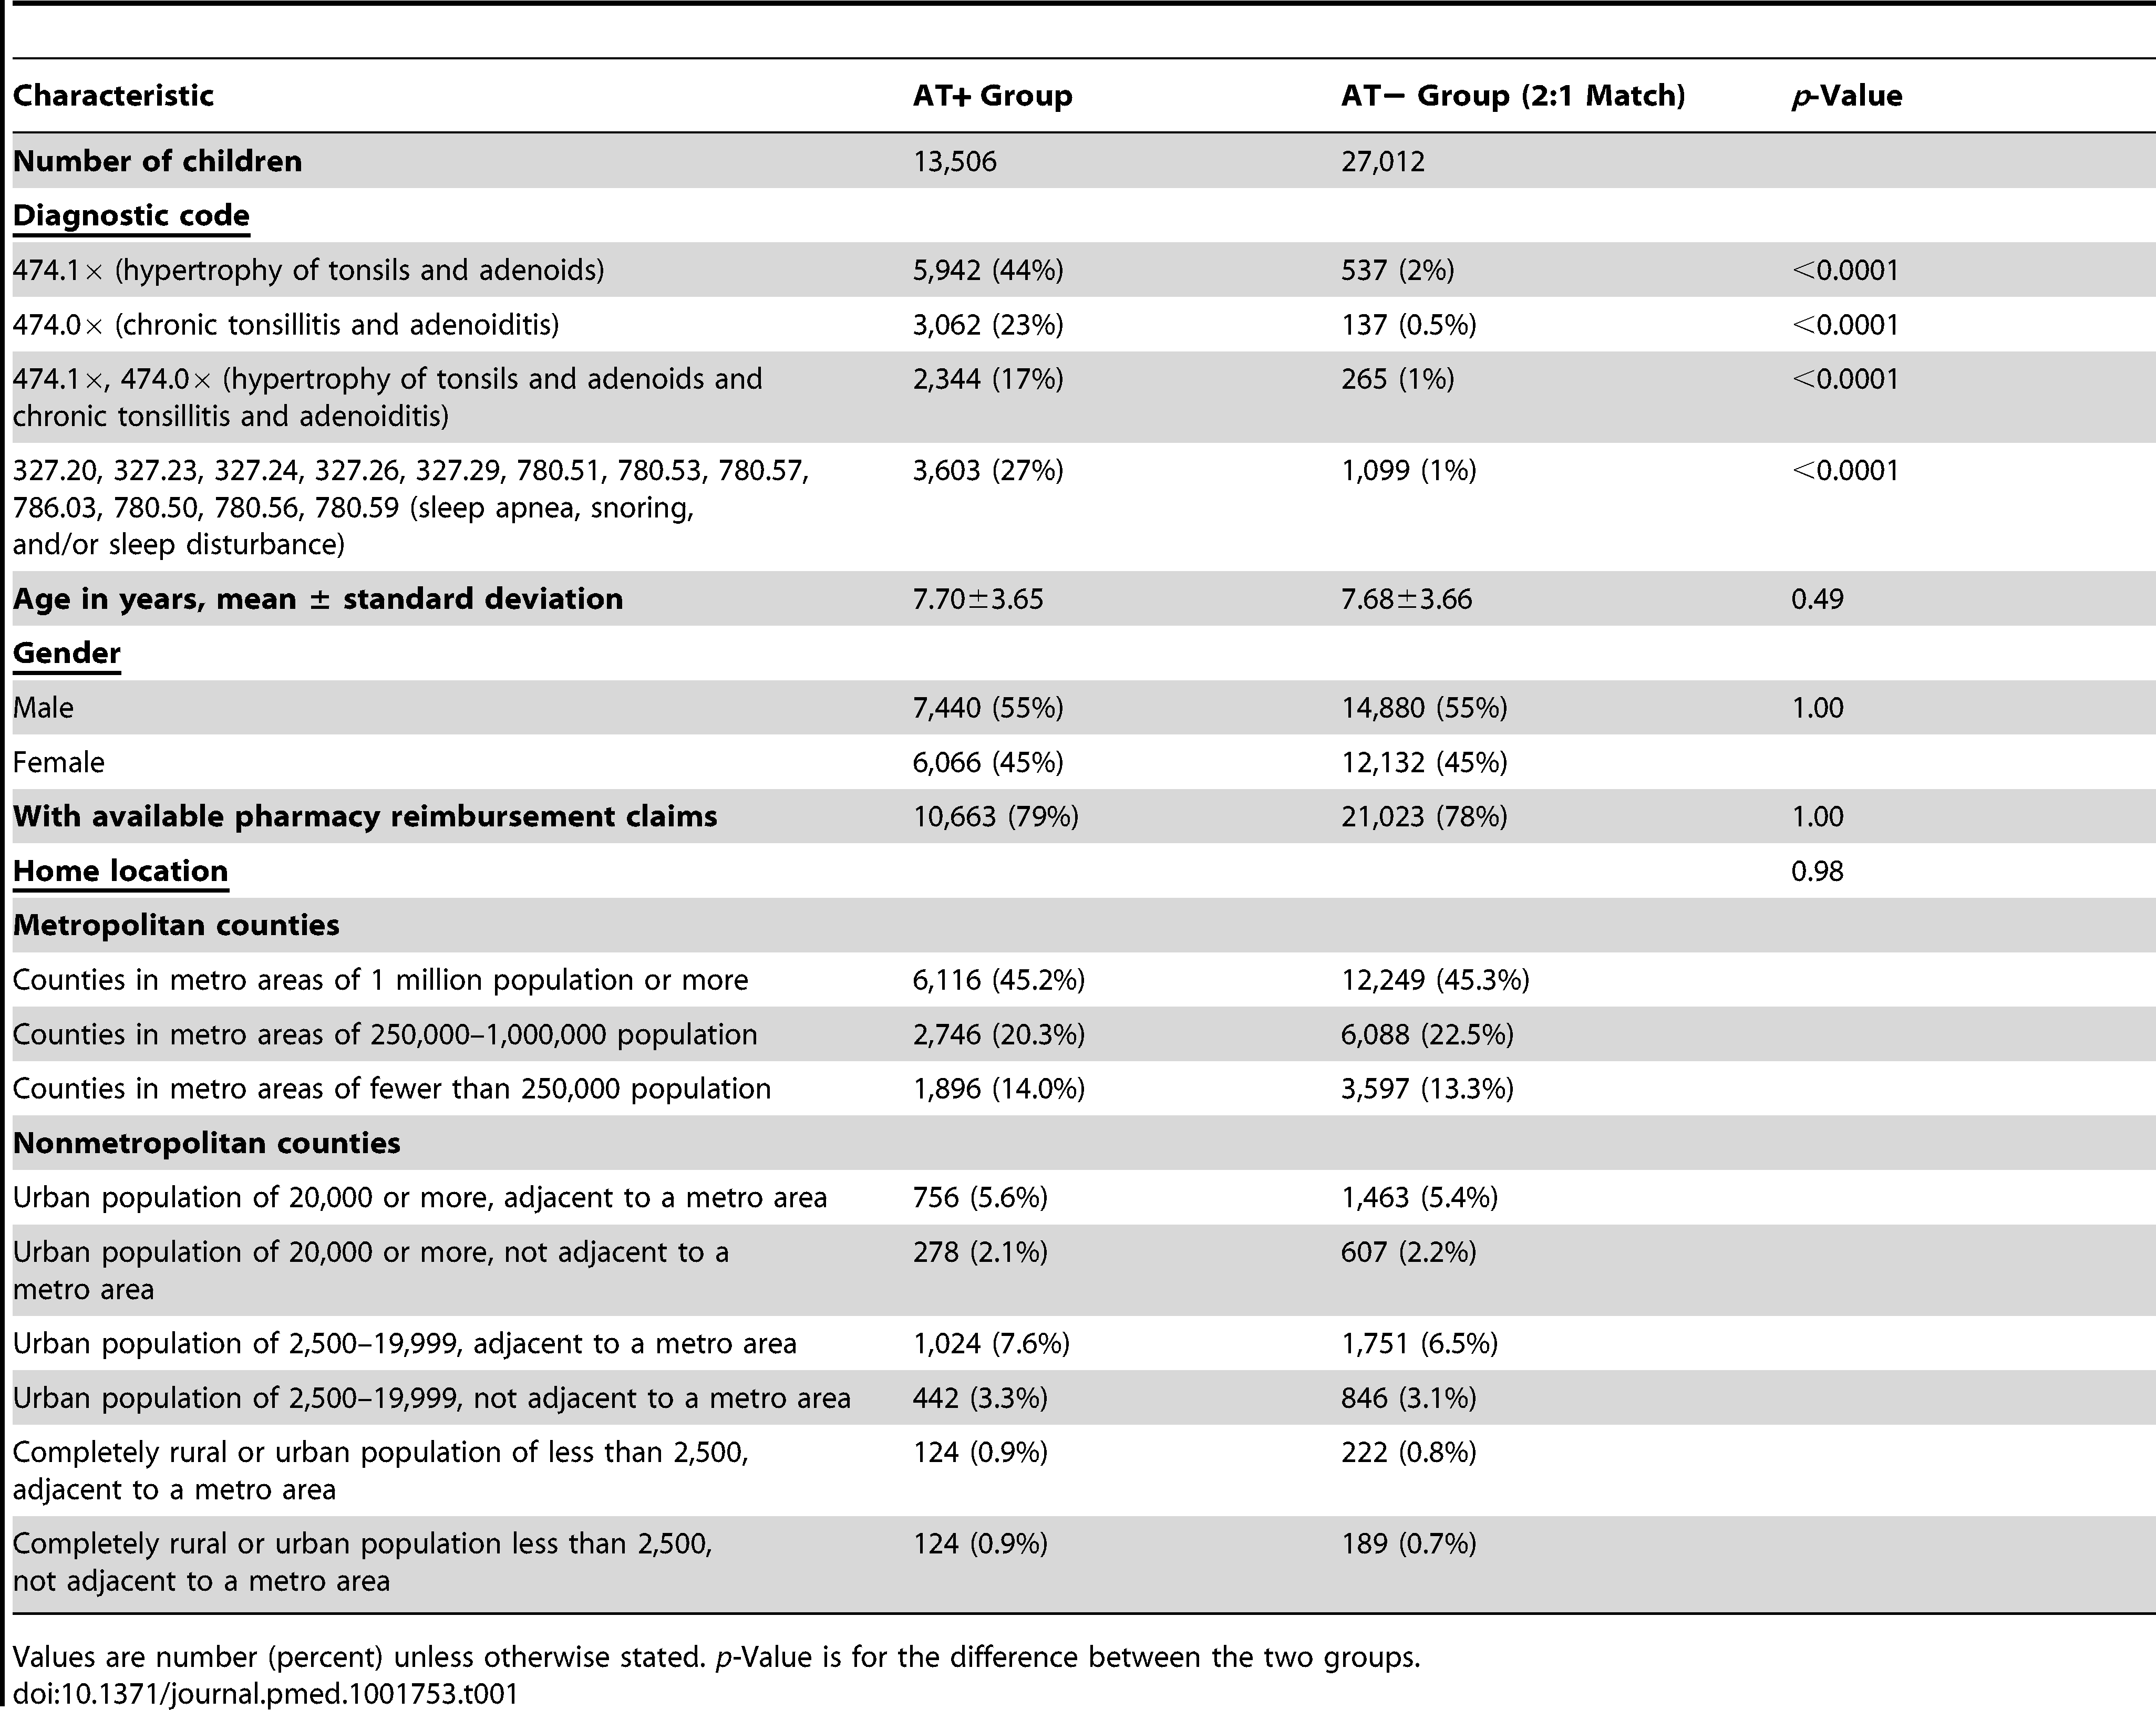 Demographic summary of case (adenotonsillectomy) and control populations.